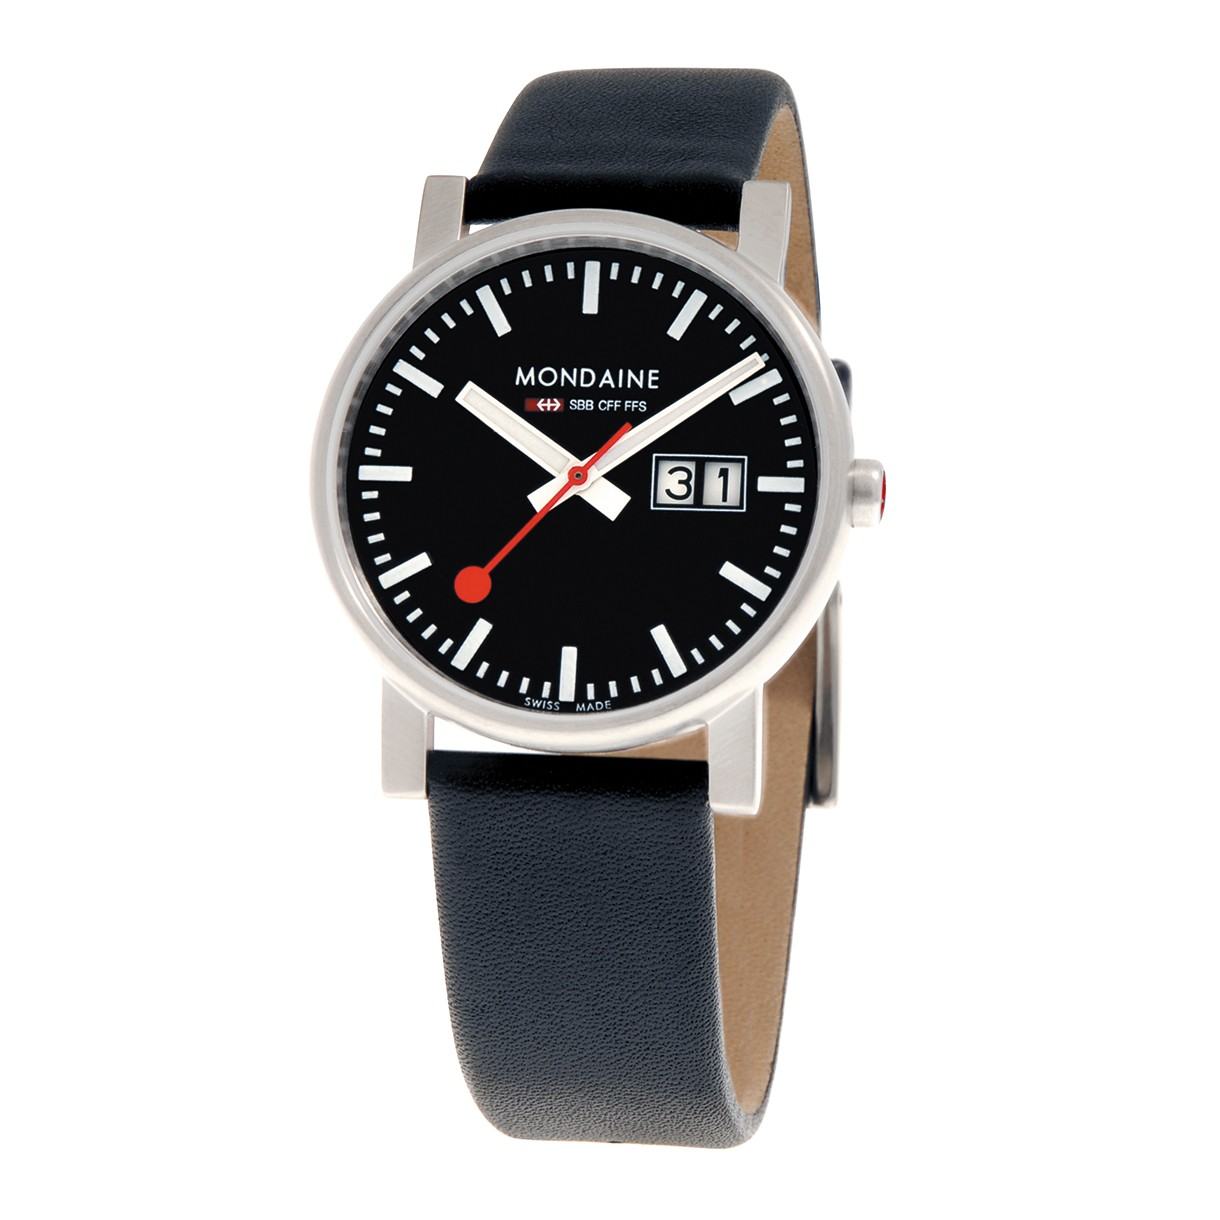 Mondaine swiss watch EVO GENTS BIG DATE - A669.30300.14SBB